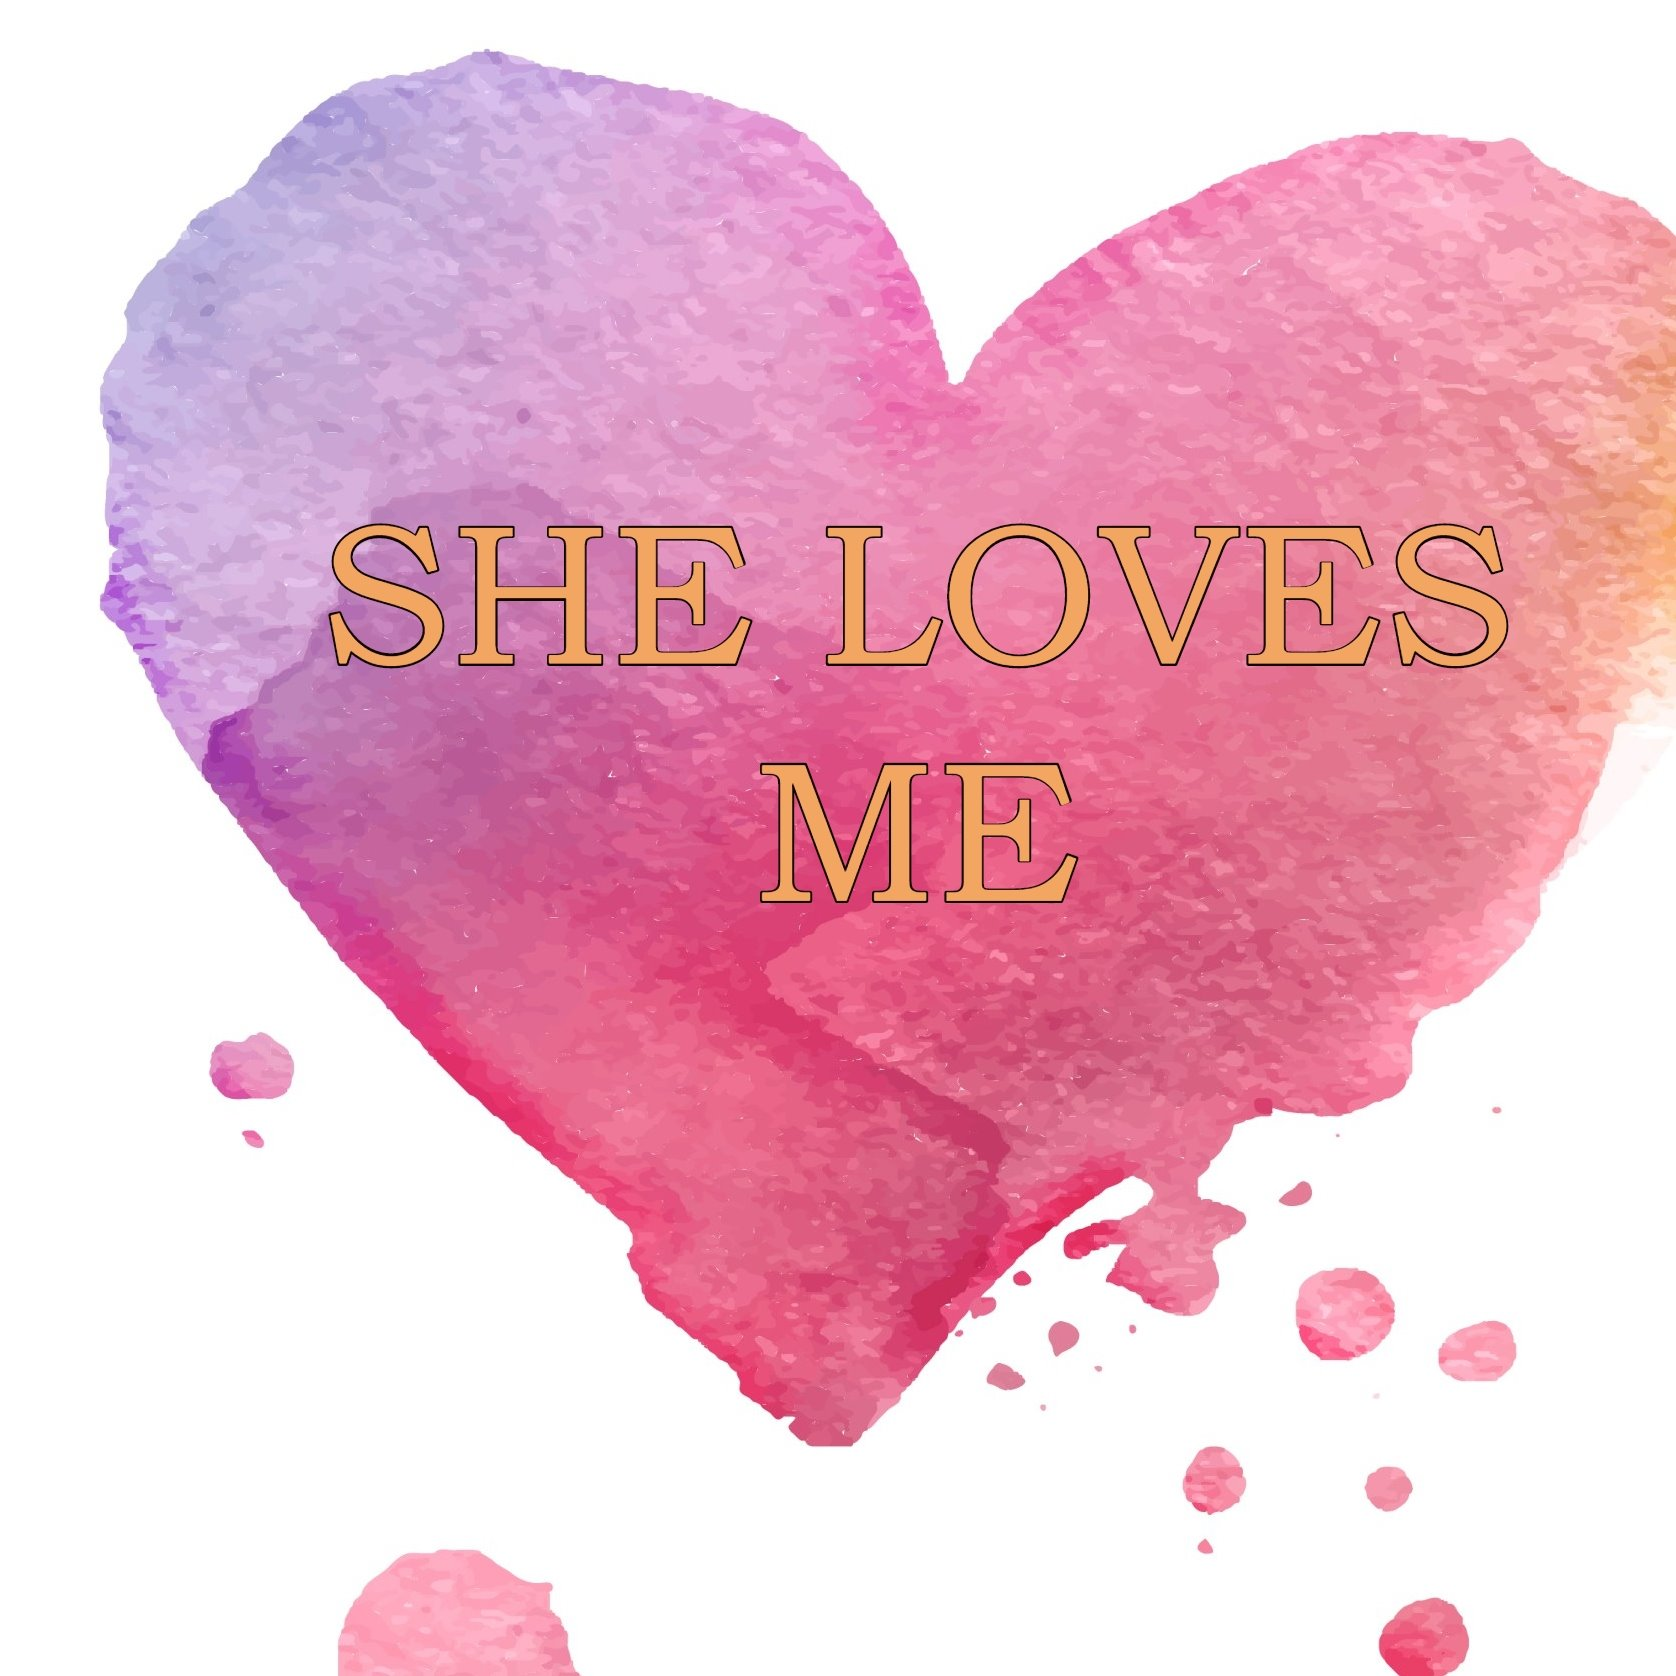 She Loves Me by Austin Playhouse